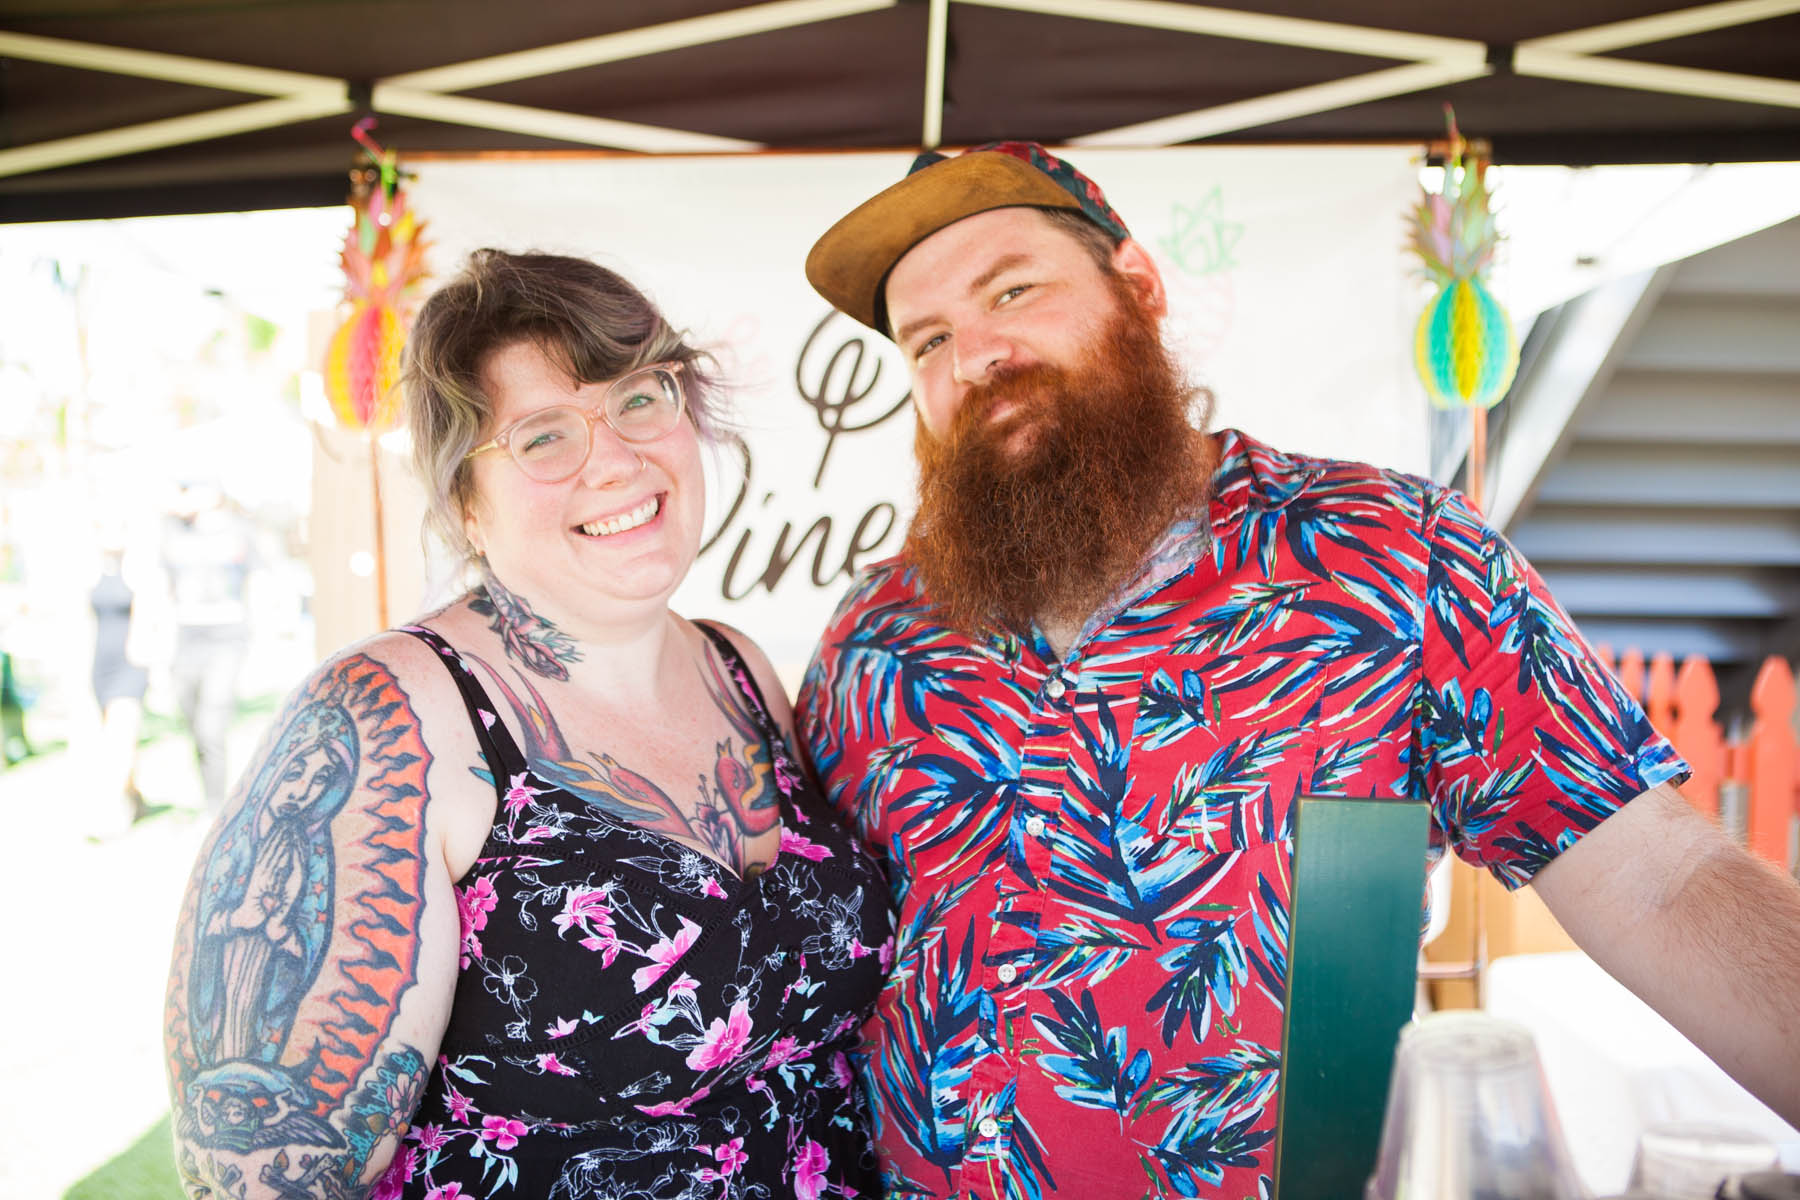 Seminole Heights gets vacay vibes from The Pink Pineapple tiki bar